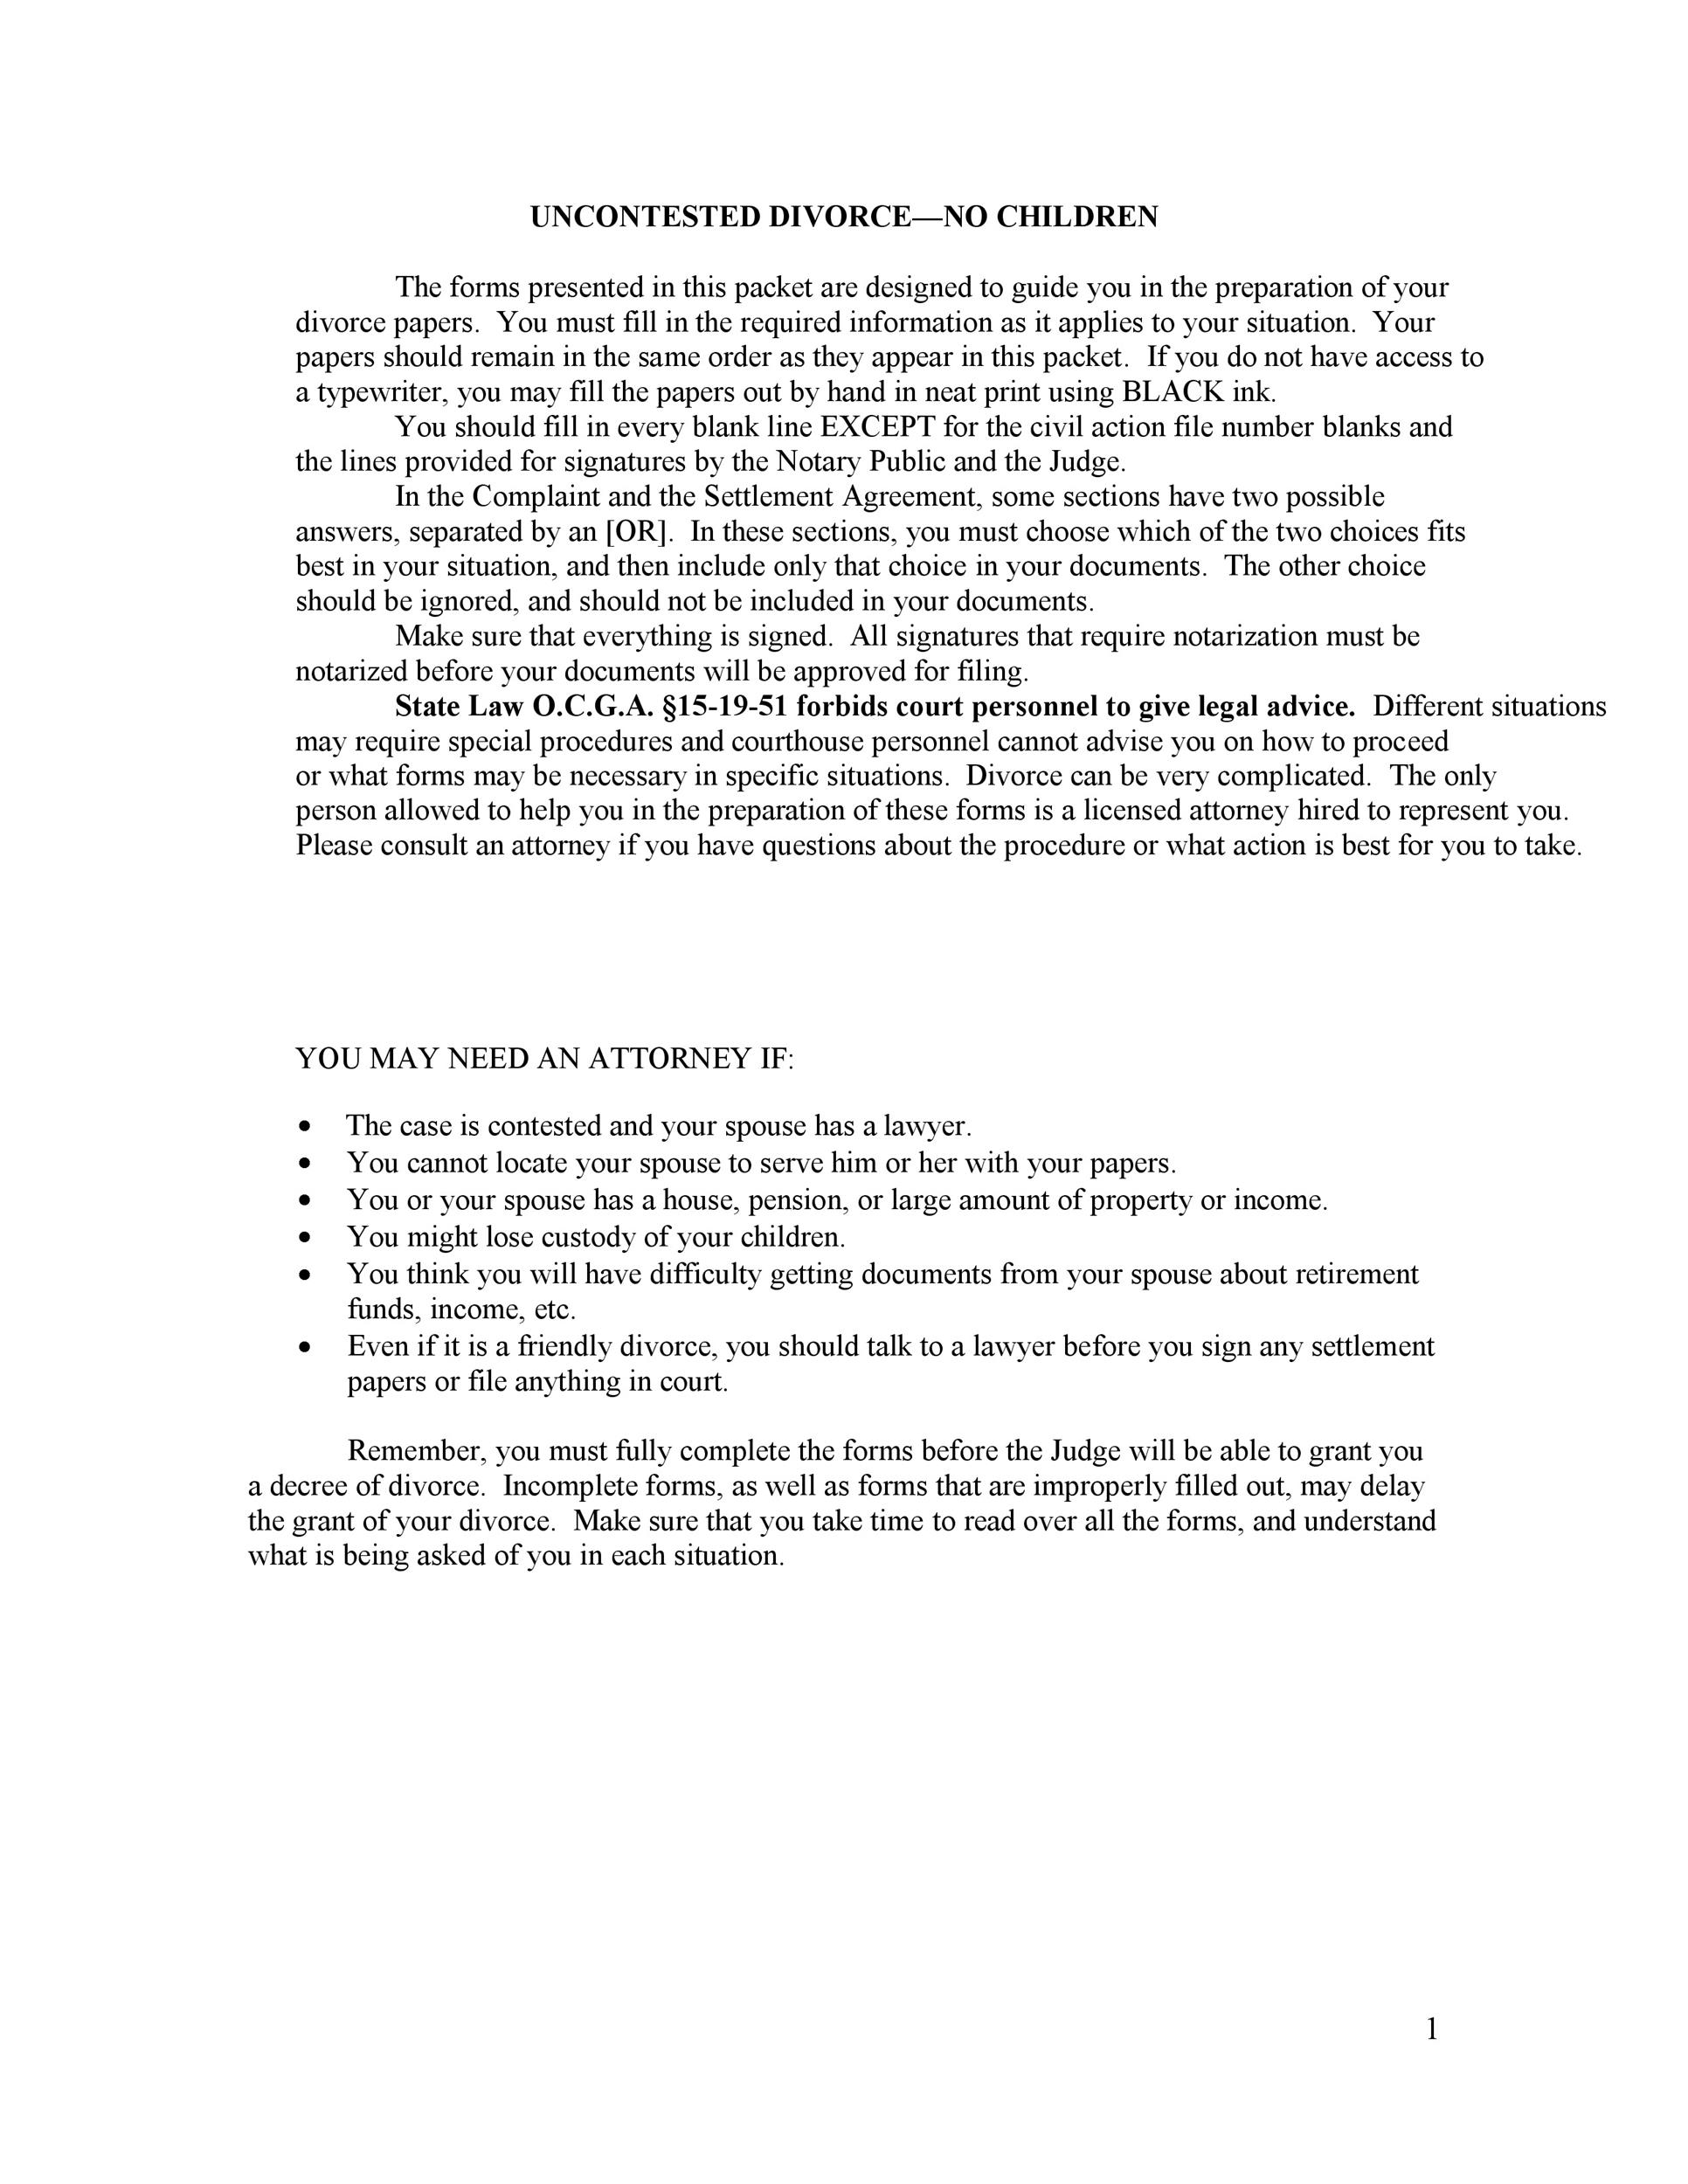 court paper template - Onwebioinnovate - prank divorce papers